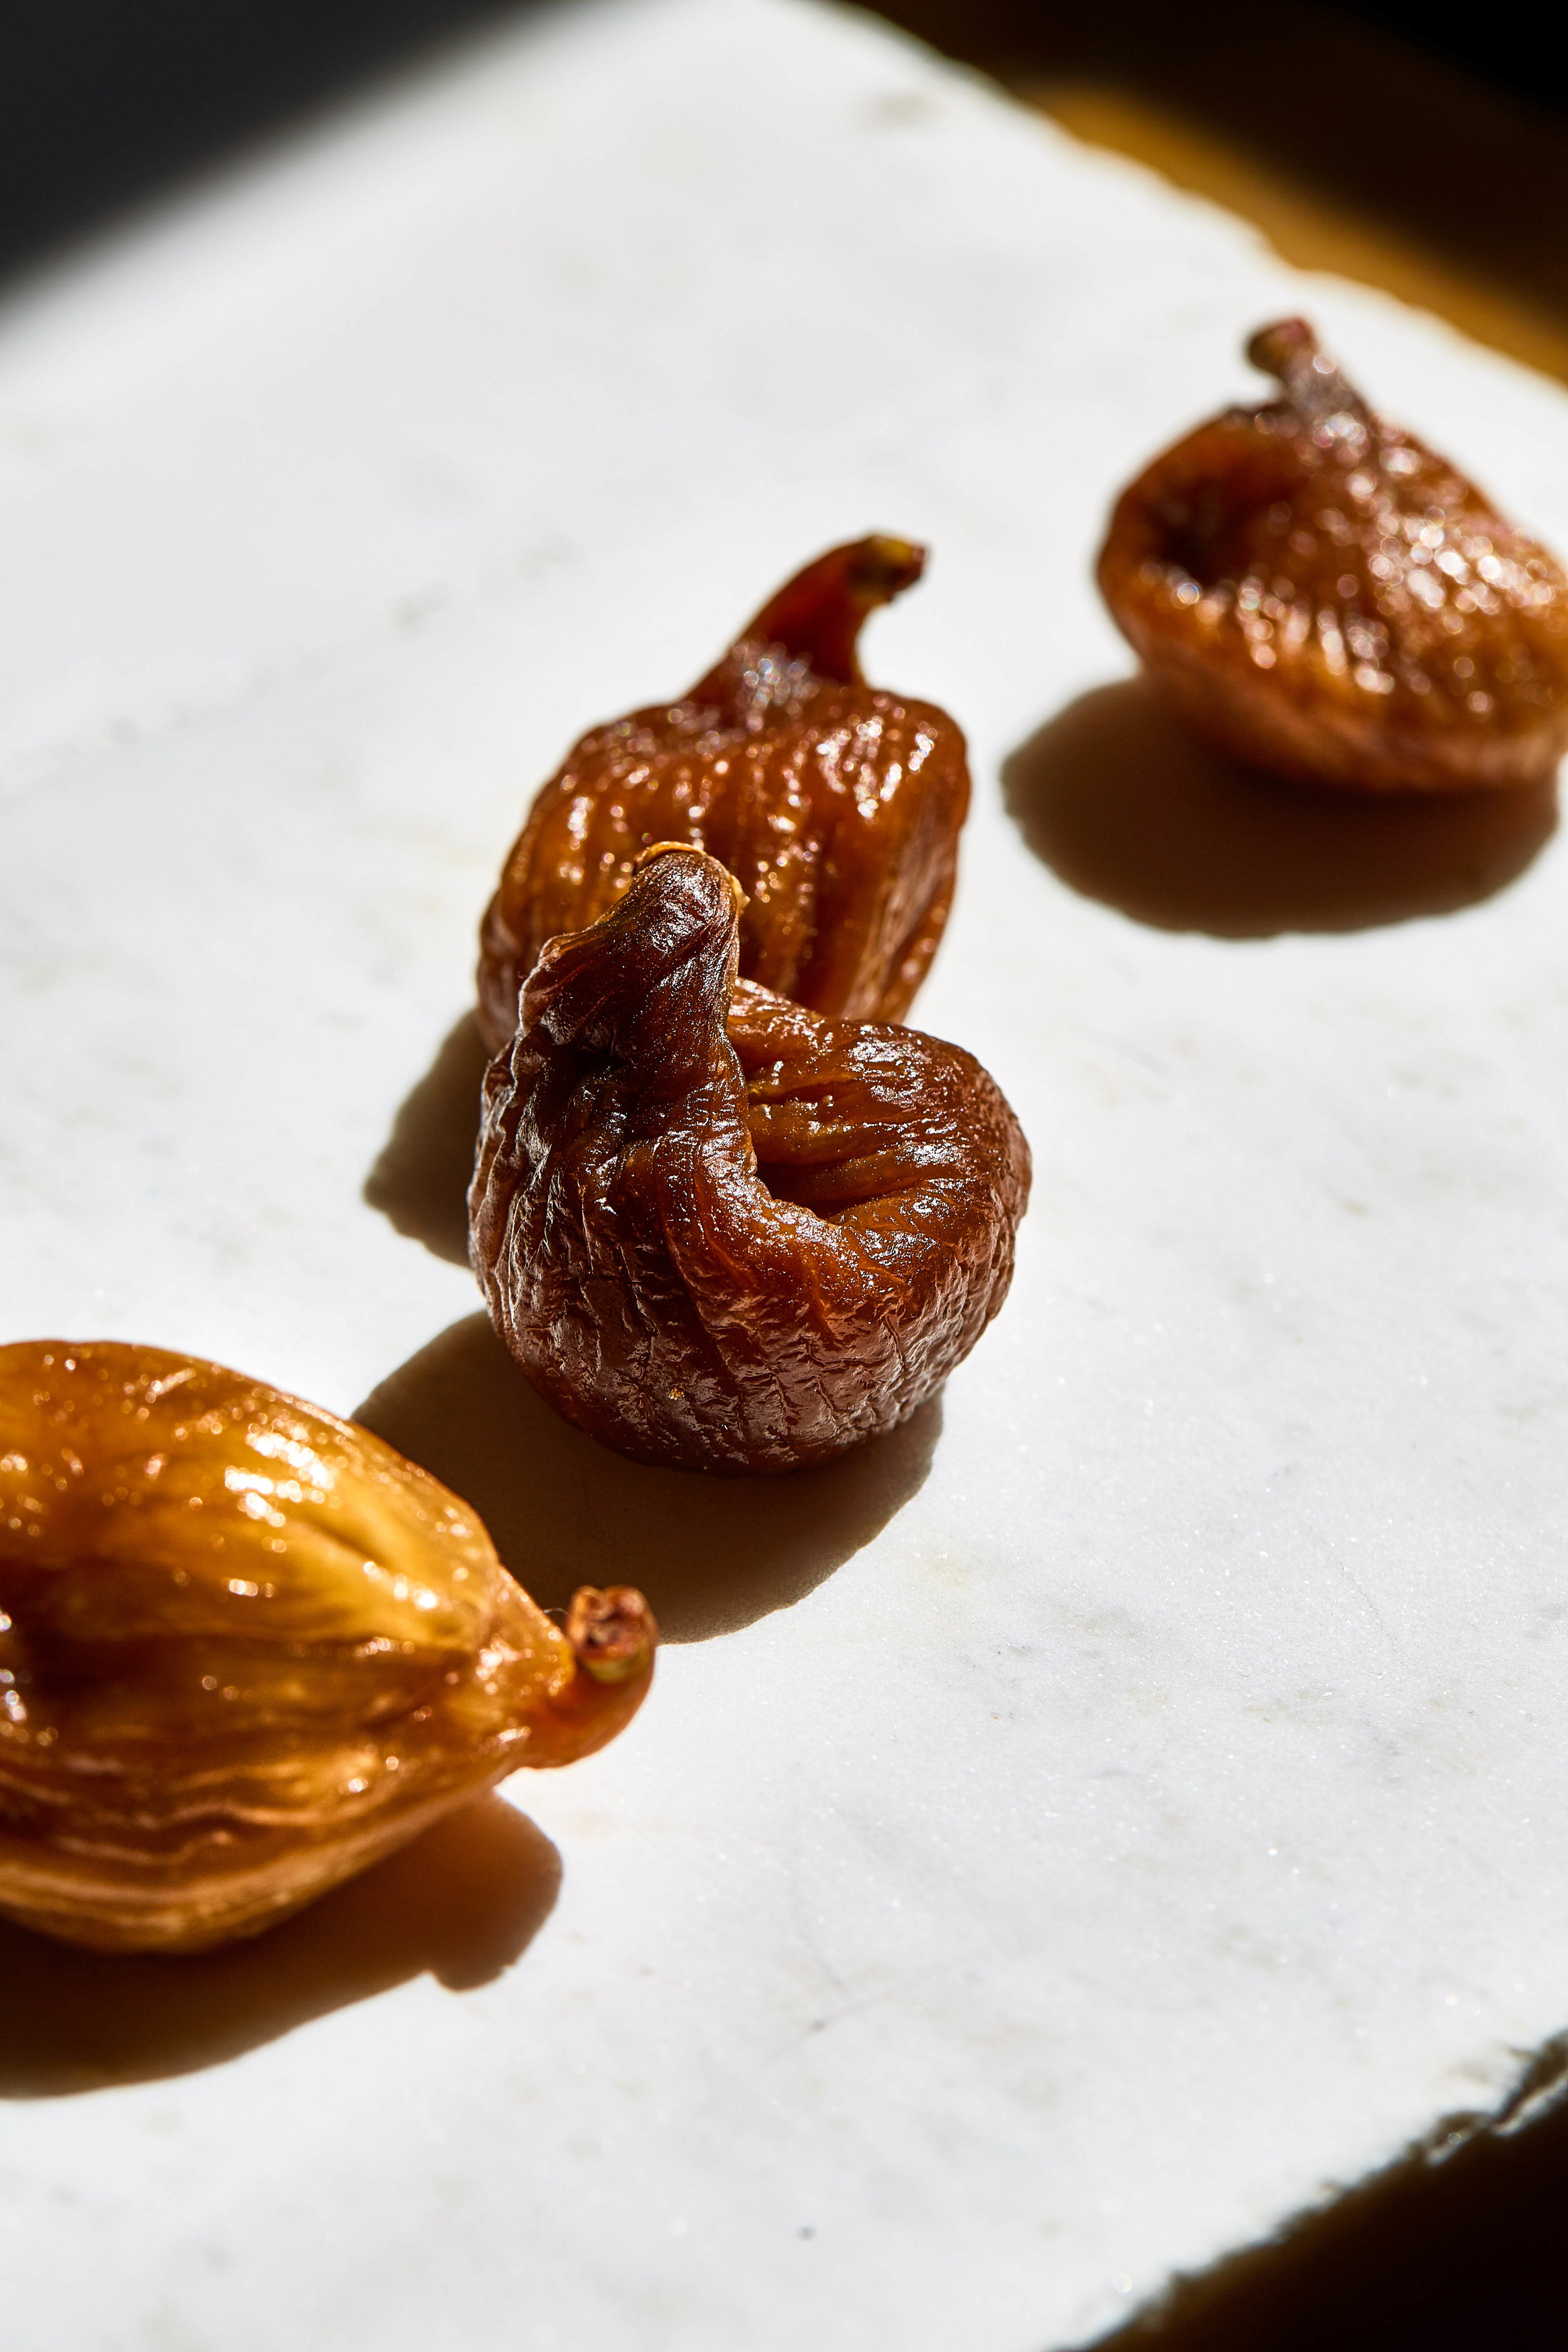 figs-raisins-12-sm.jpg